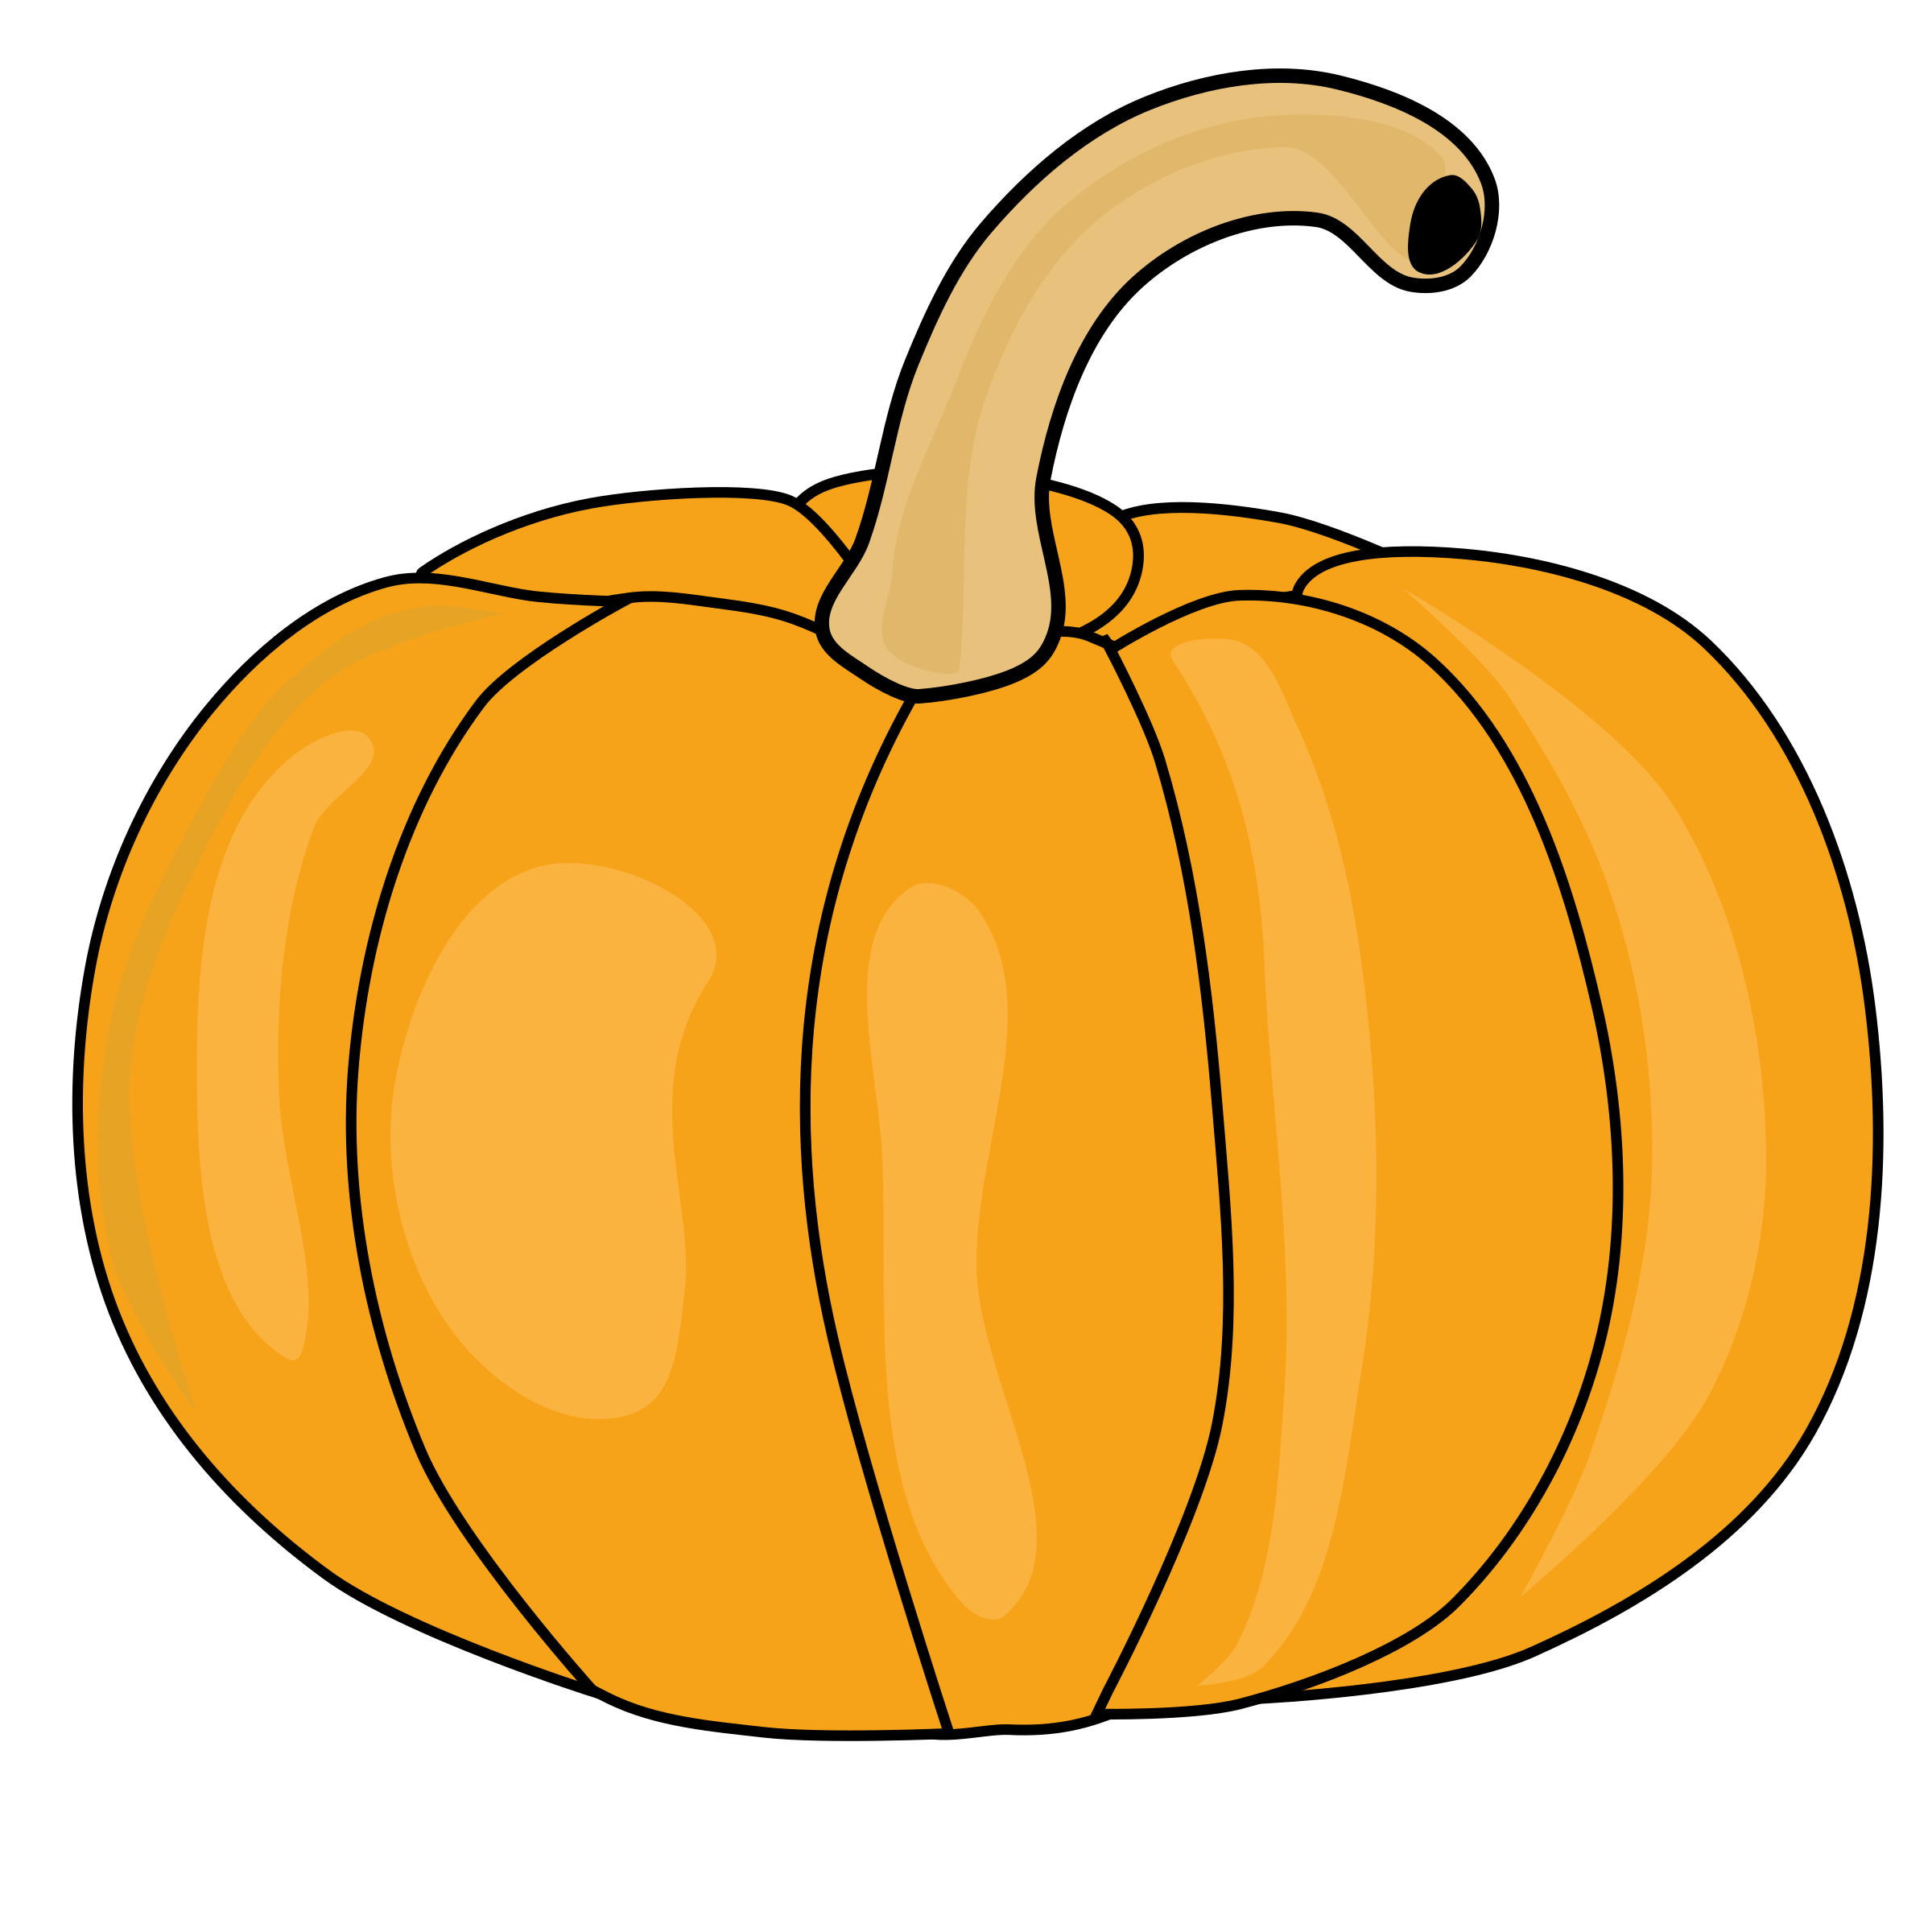 pumpkin by poonsab